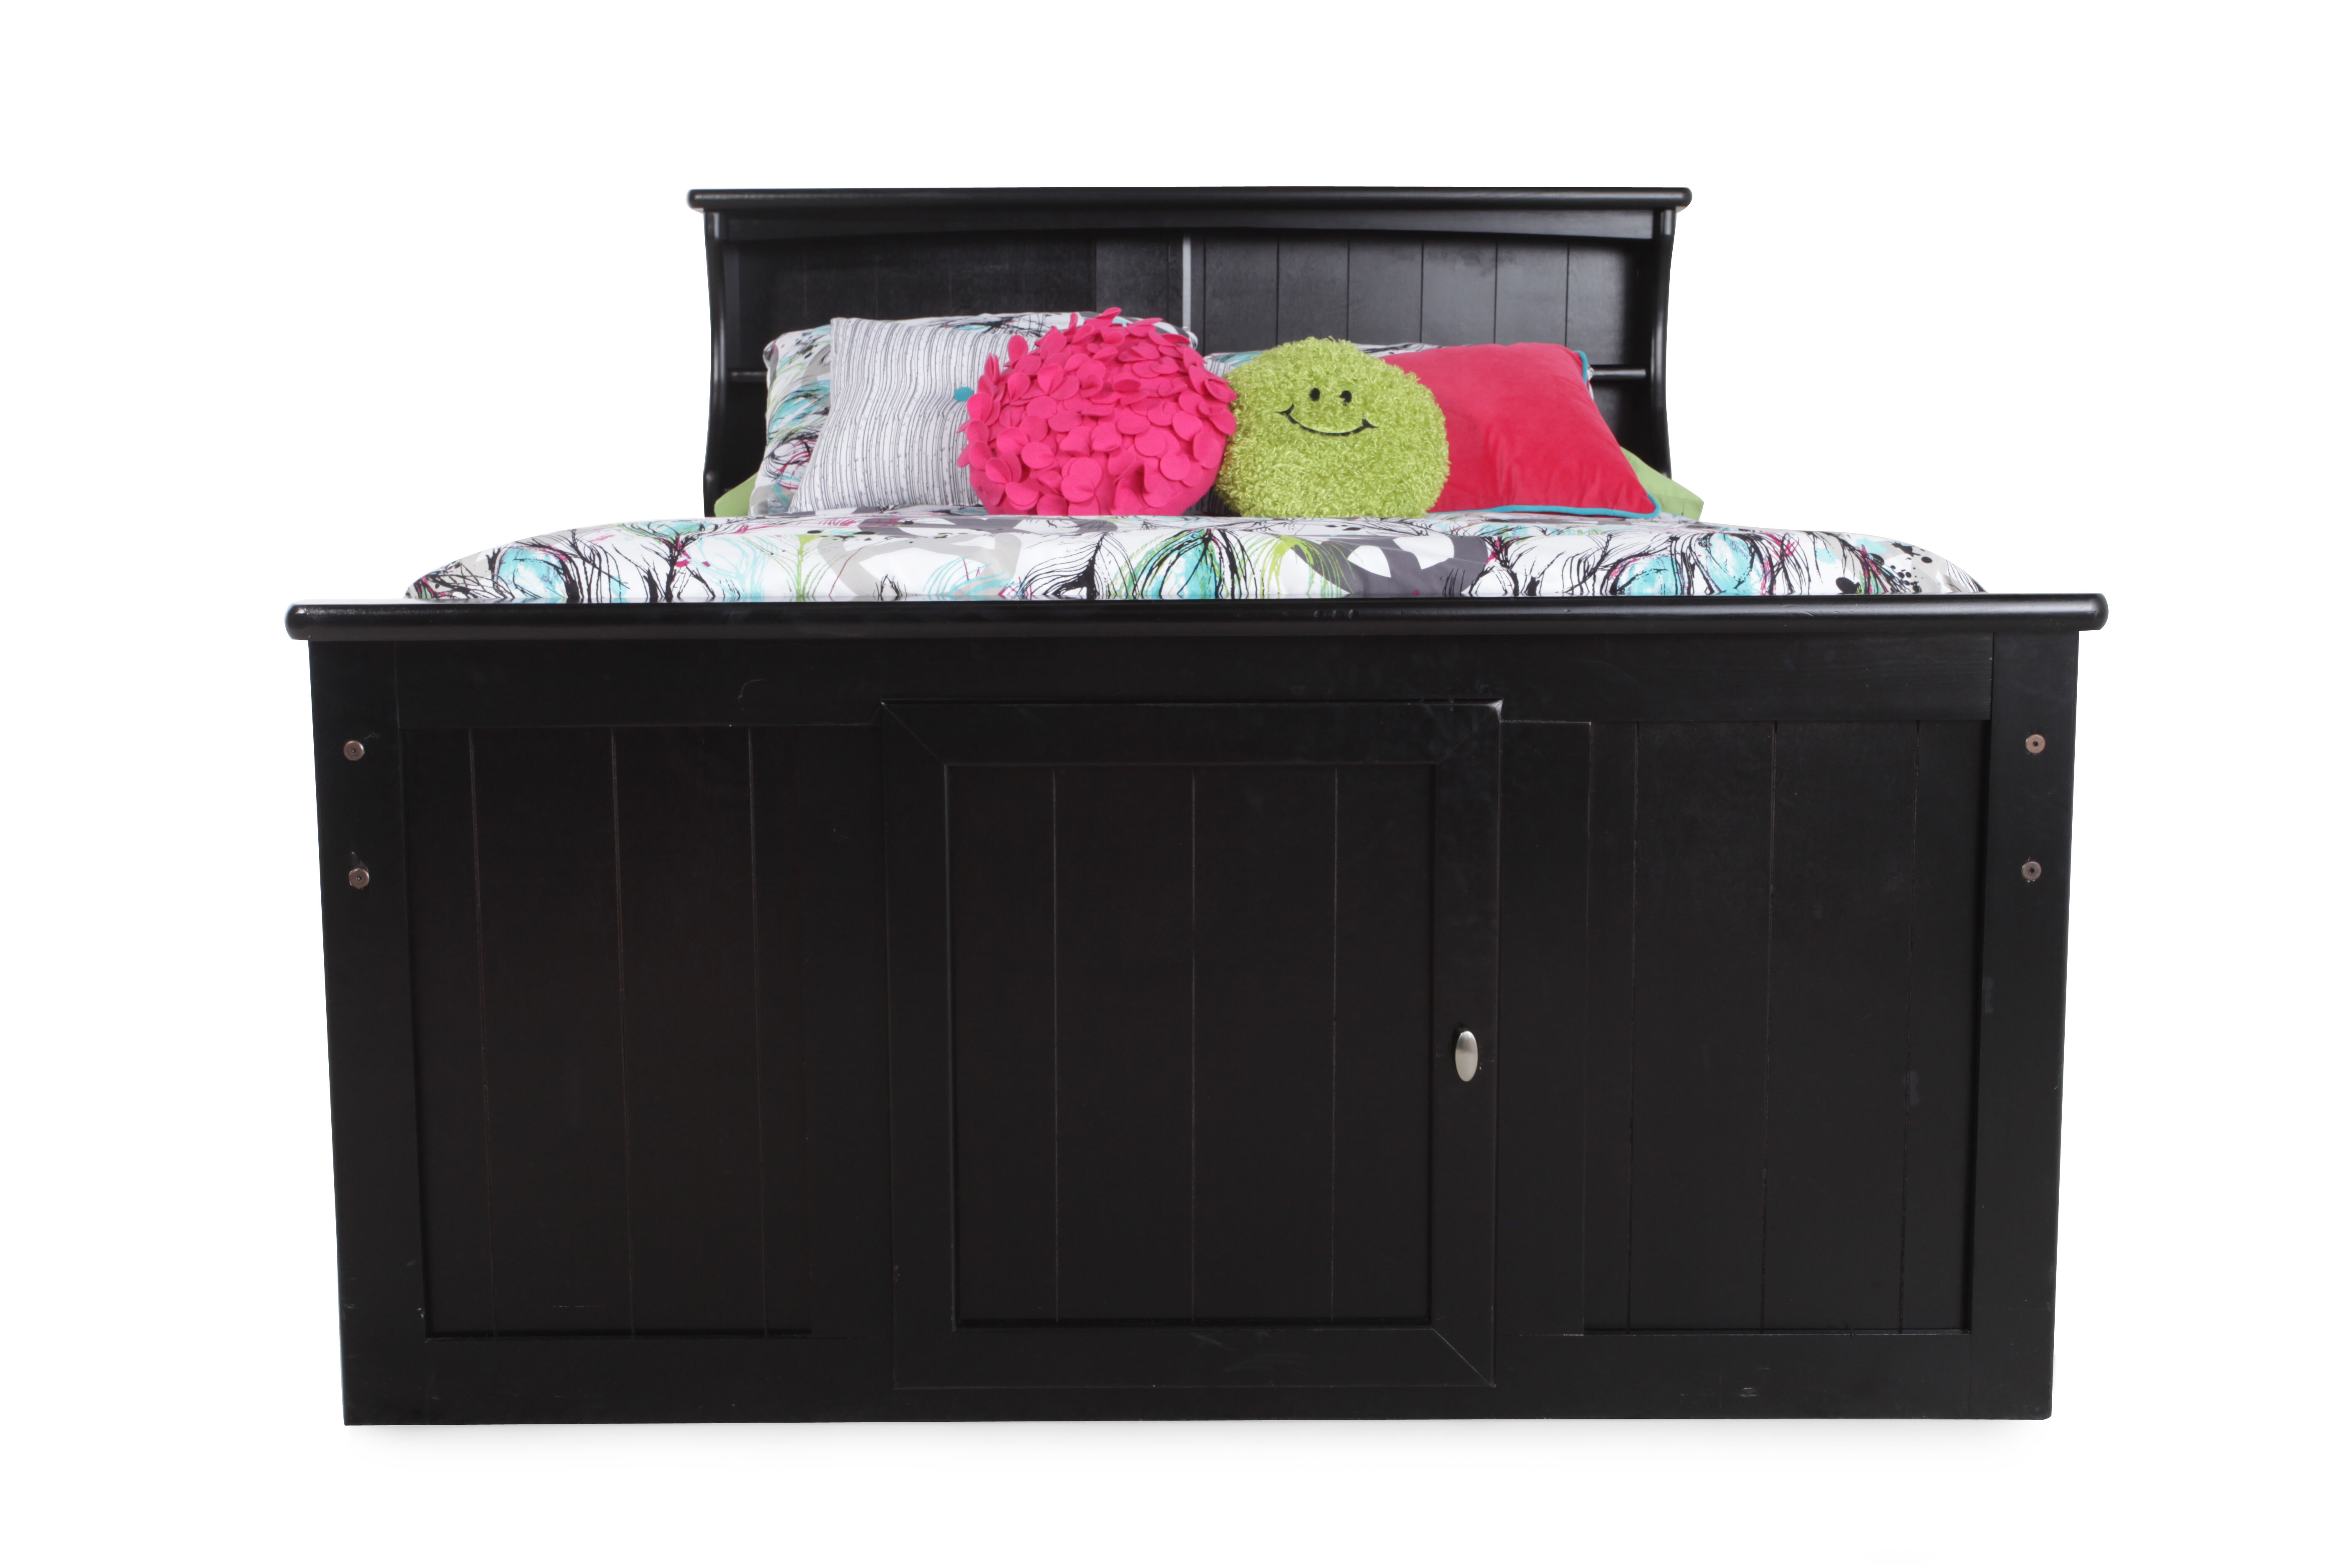 Images Solid Pine Youth Planked Storage Bed in Black Cherryu0026nbsp; Solid Pine Youth Planked Storage Bed in Black Cherryu0026nbsp;  sc 1 st  Mathis Brothers & Solid Pine Youth Planked Storage Bed in Black Cherry | Mathis ...